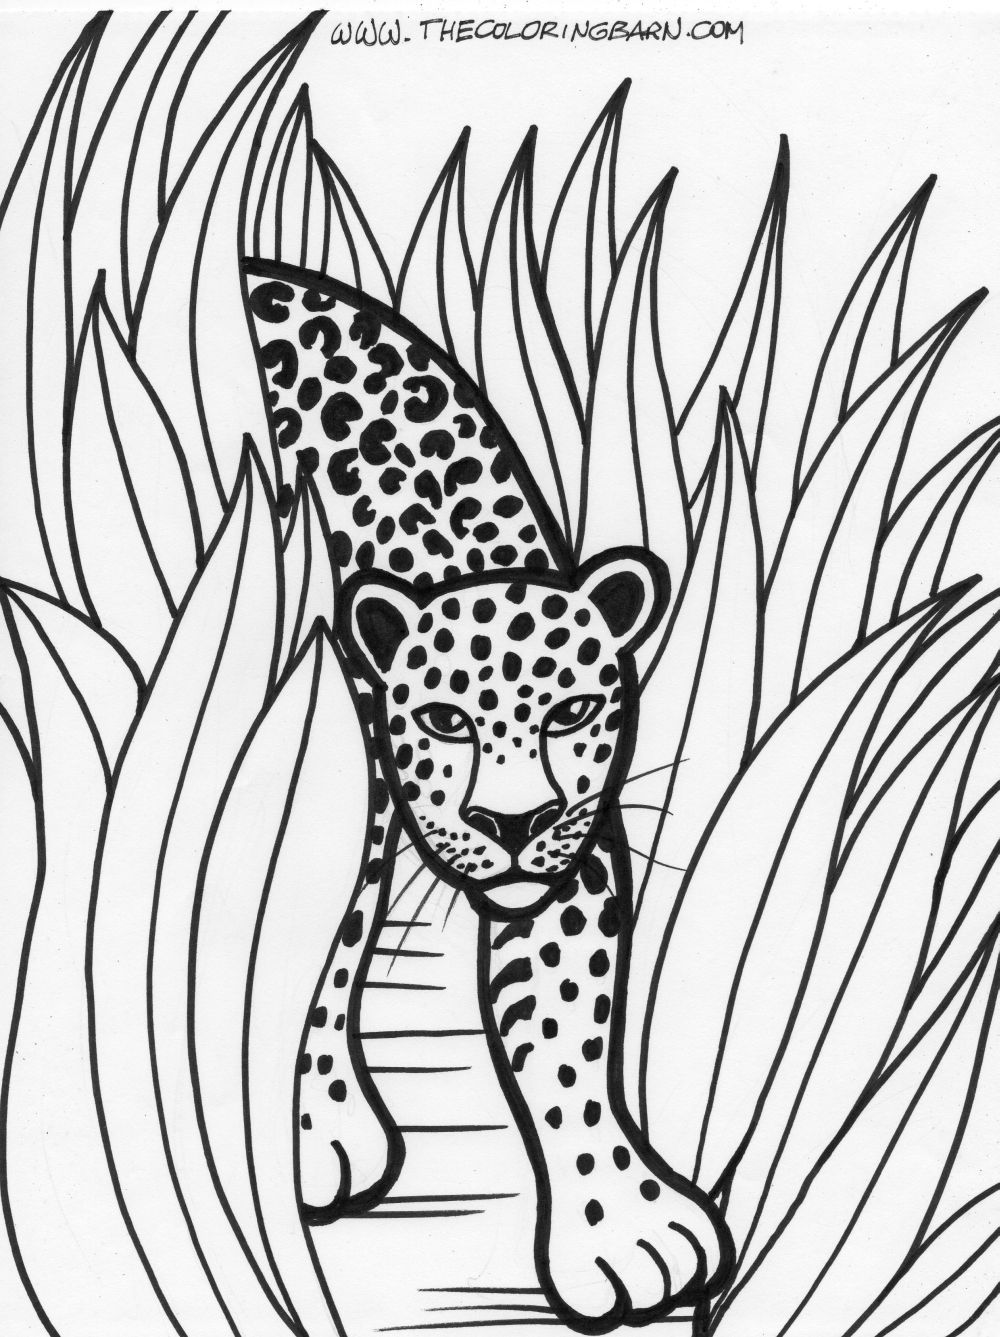 1000x1337 Rainforest Printable Coloring Pages The Coloring Barn Printable